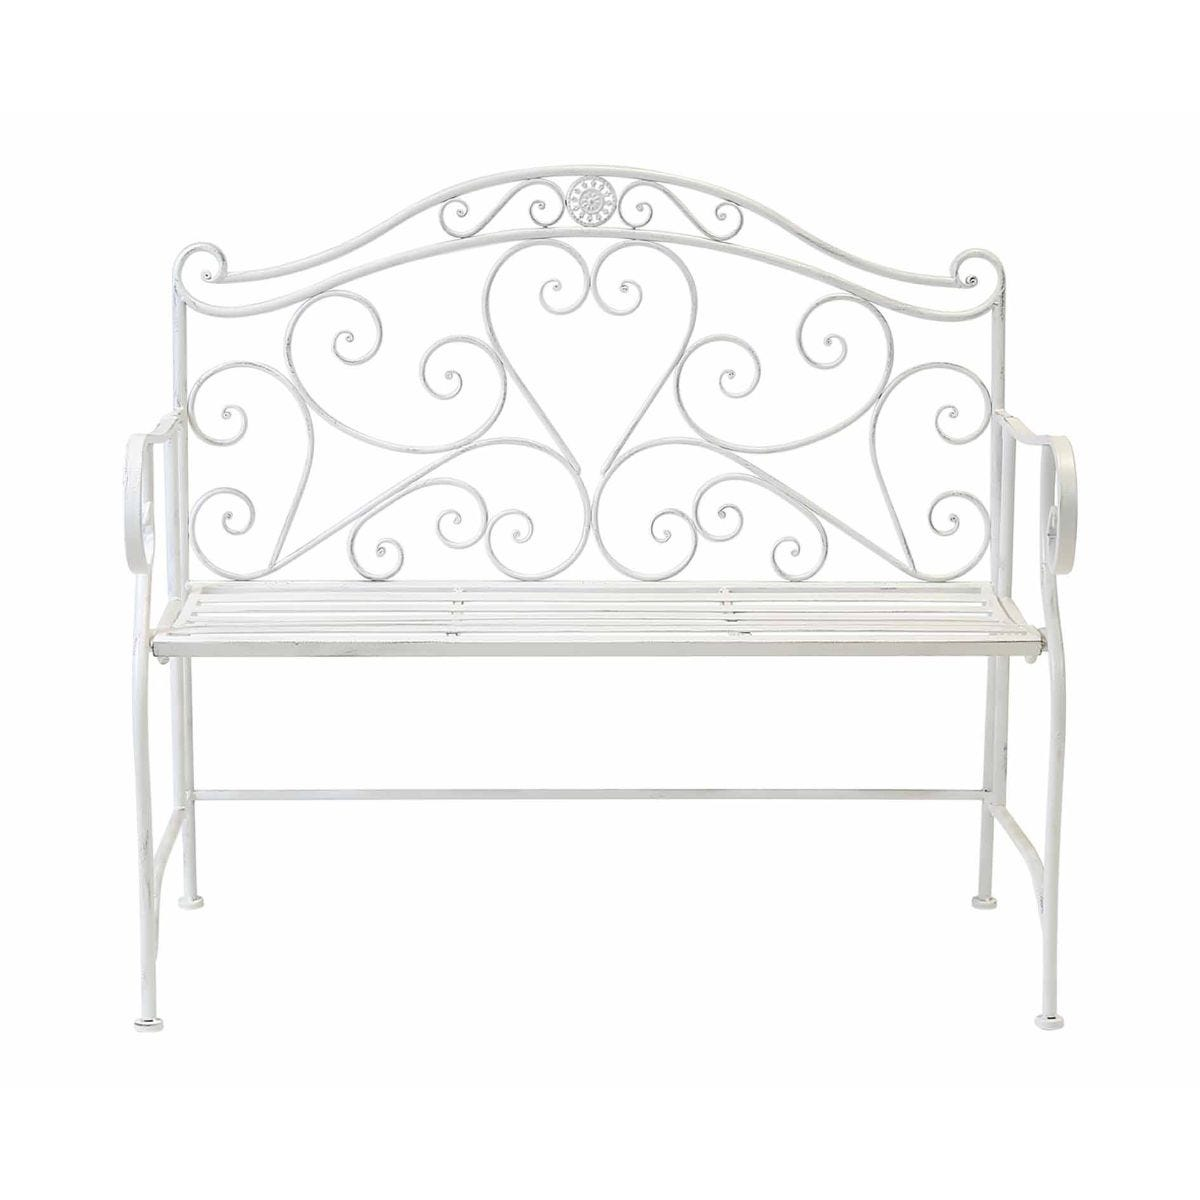 Charles Bentley Wrought Iron Garden Bench, White